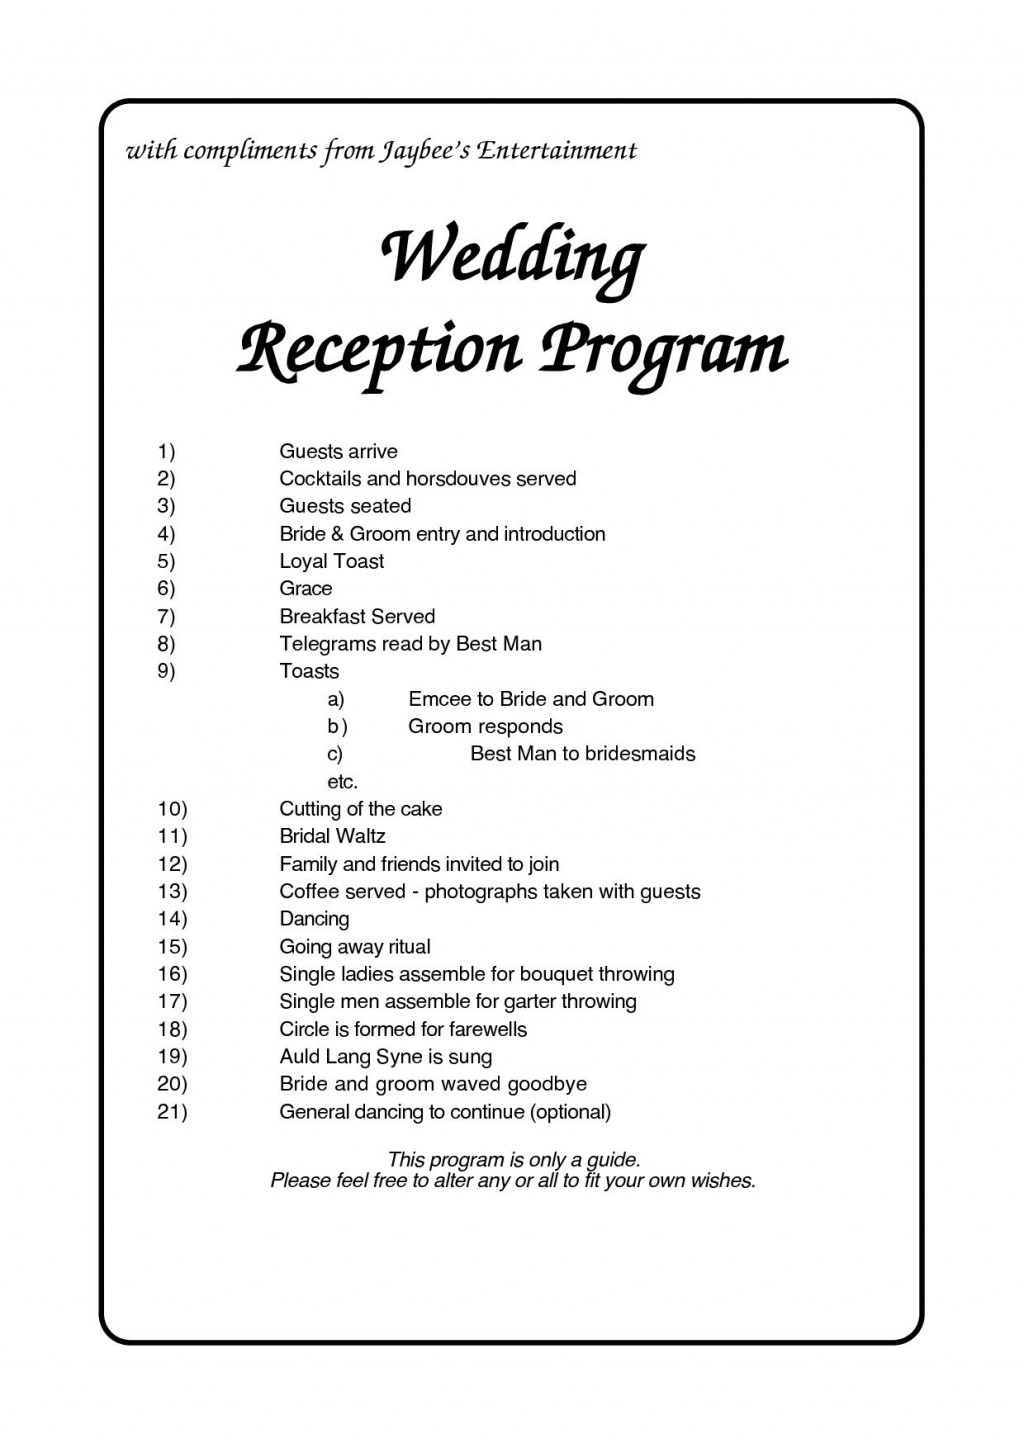 004 Exceptional Wedding Reception Program Template Photo  Templates Layout Free Download Ceremony AndLarge